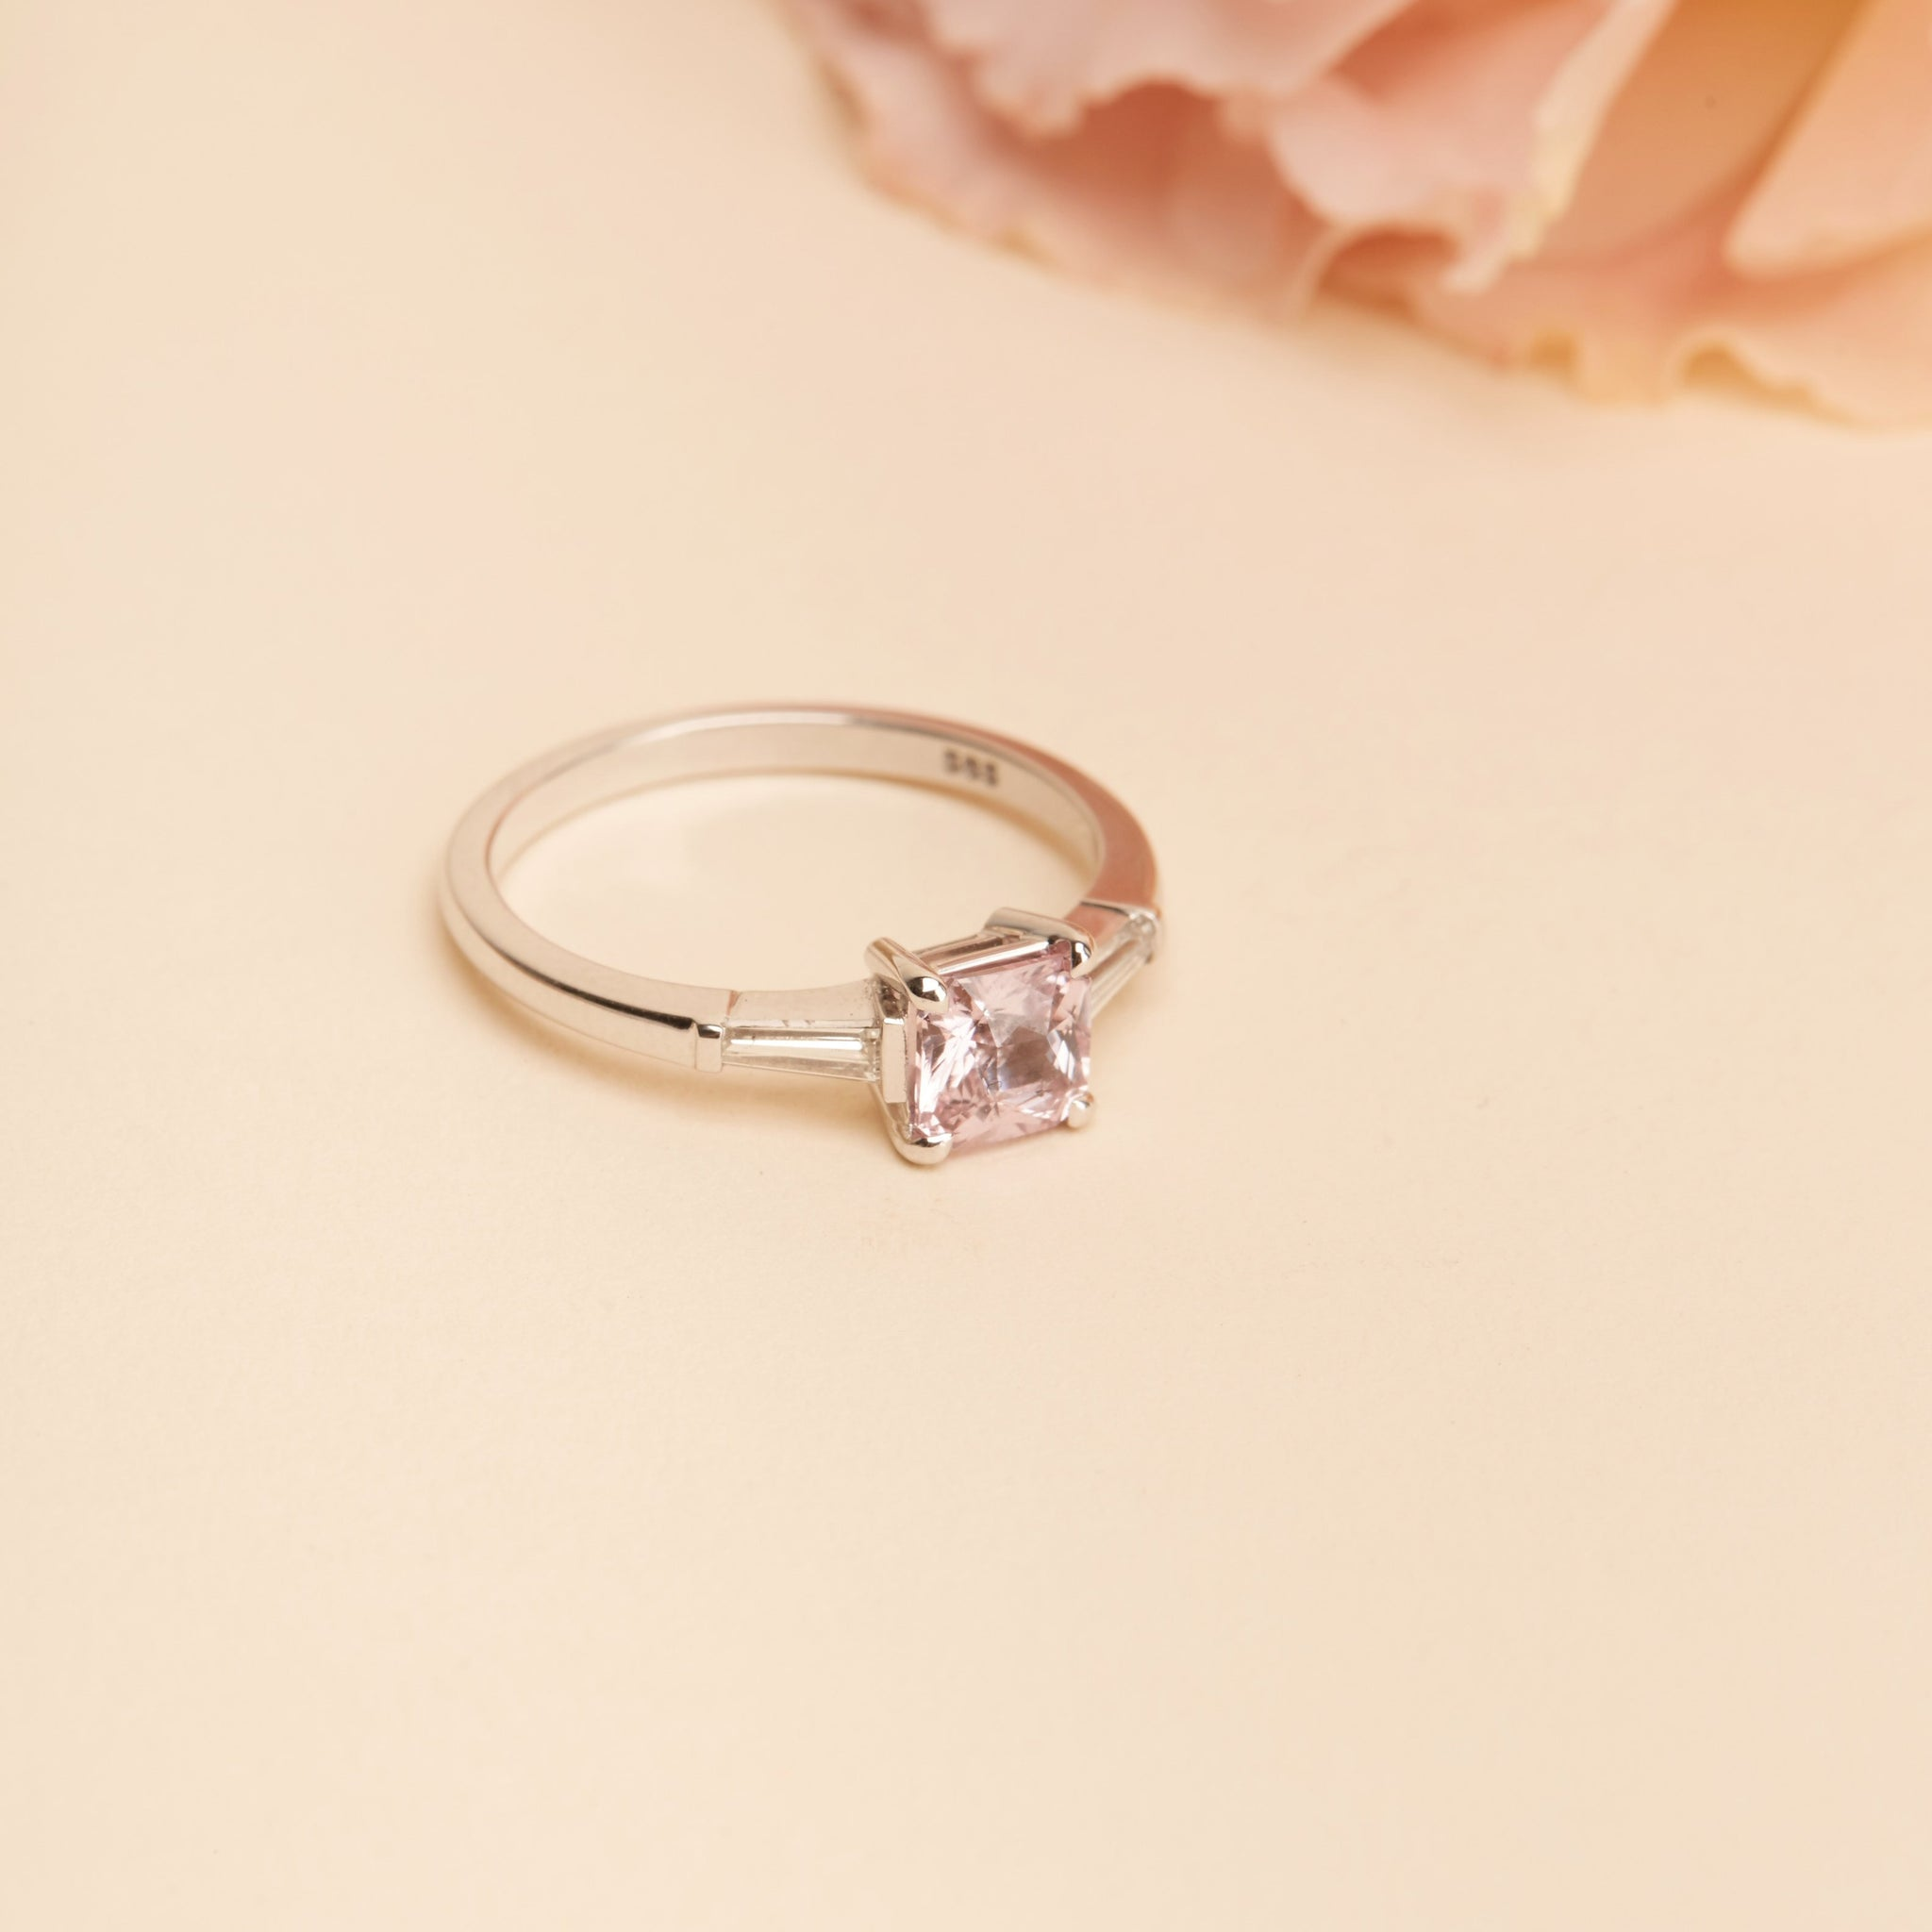 bespoke engagement handmade finest rings in ring contemporary stone jewellery product london the diamond pink